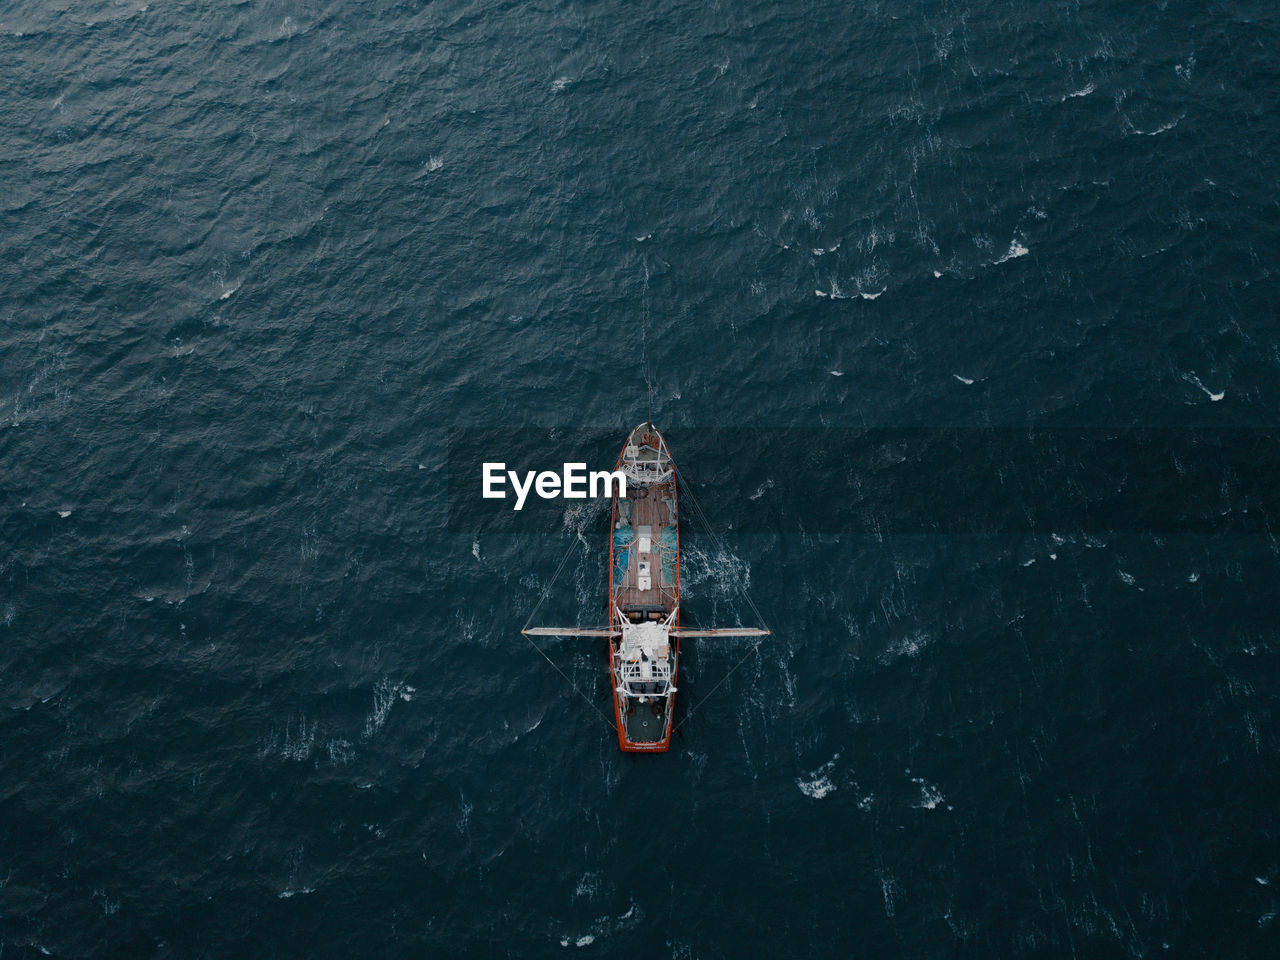 Aerial View Of Boat Sailing In Sea